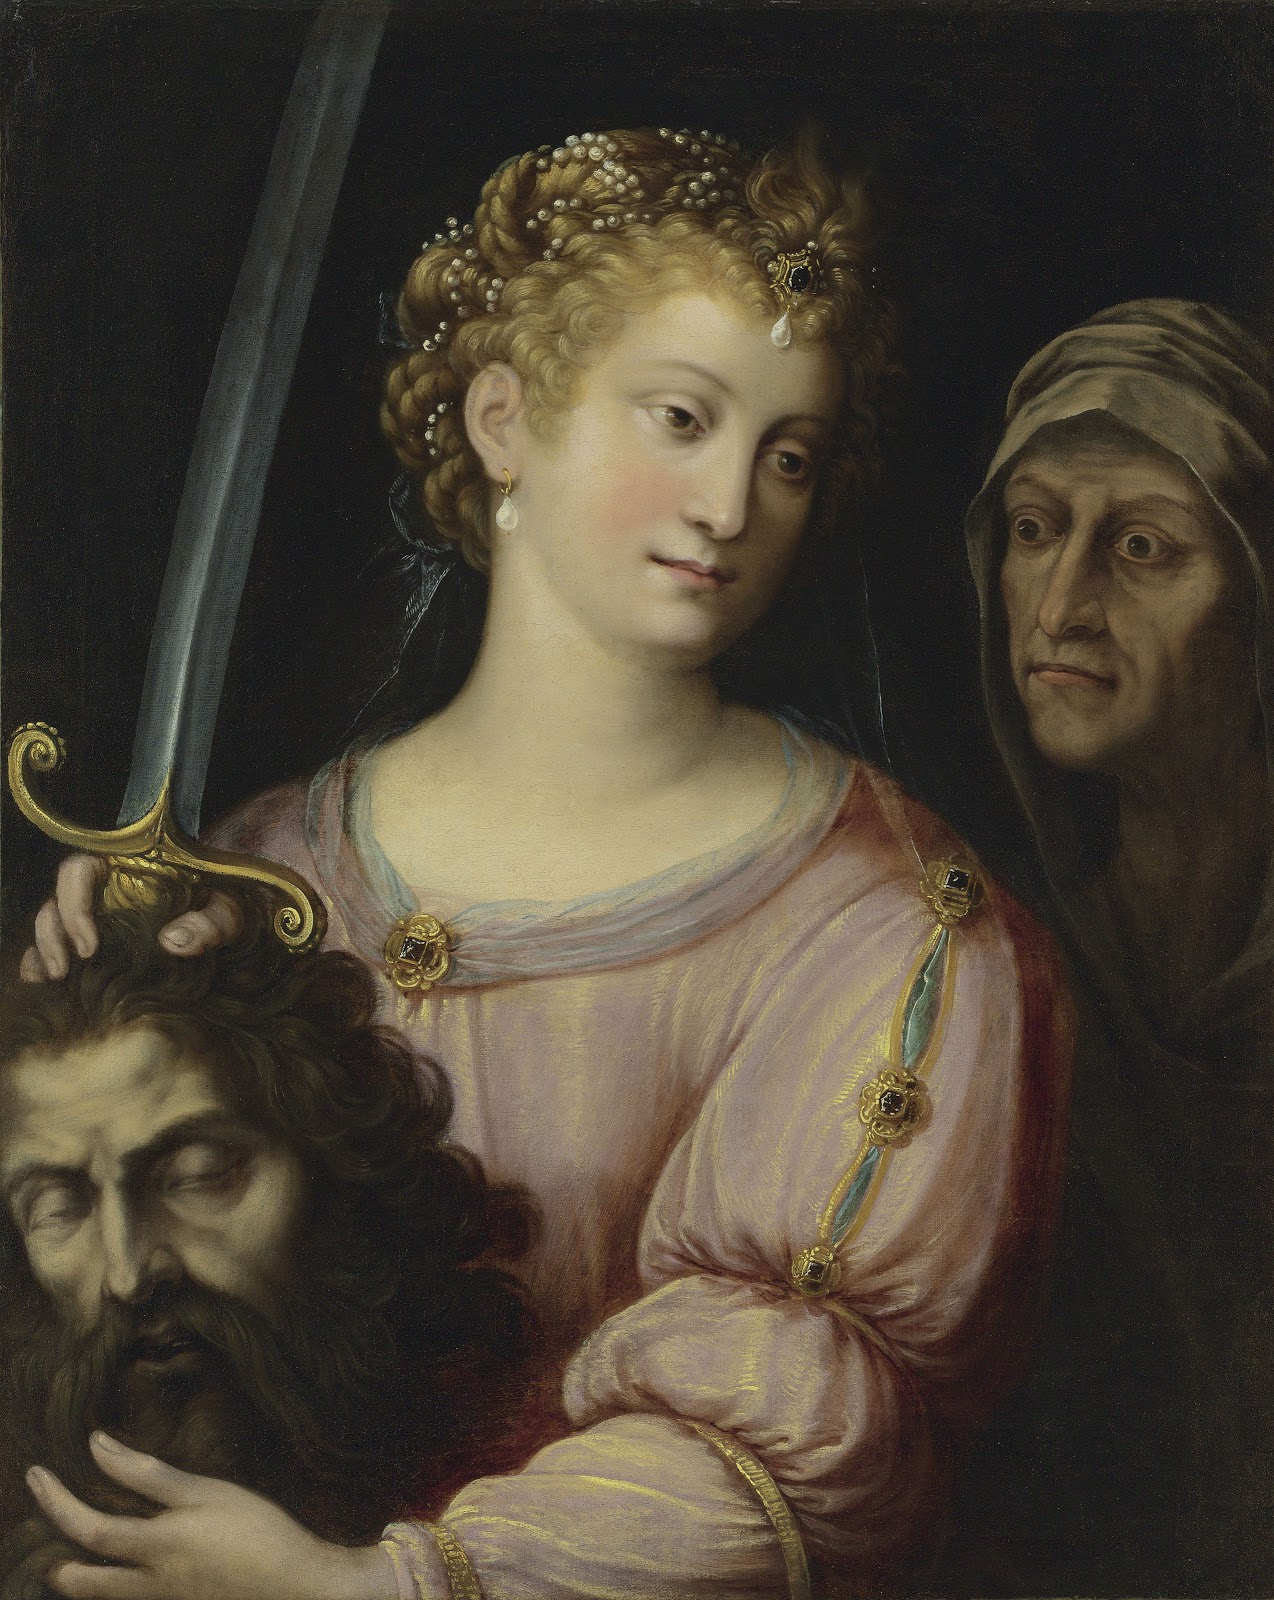 Fede-Galizia-Judith-with-the-Head-of-Holfernes-Christies.jpg